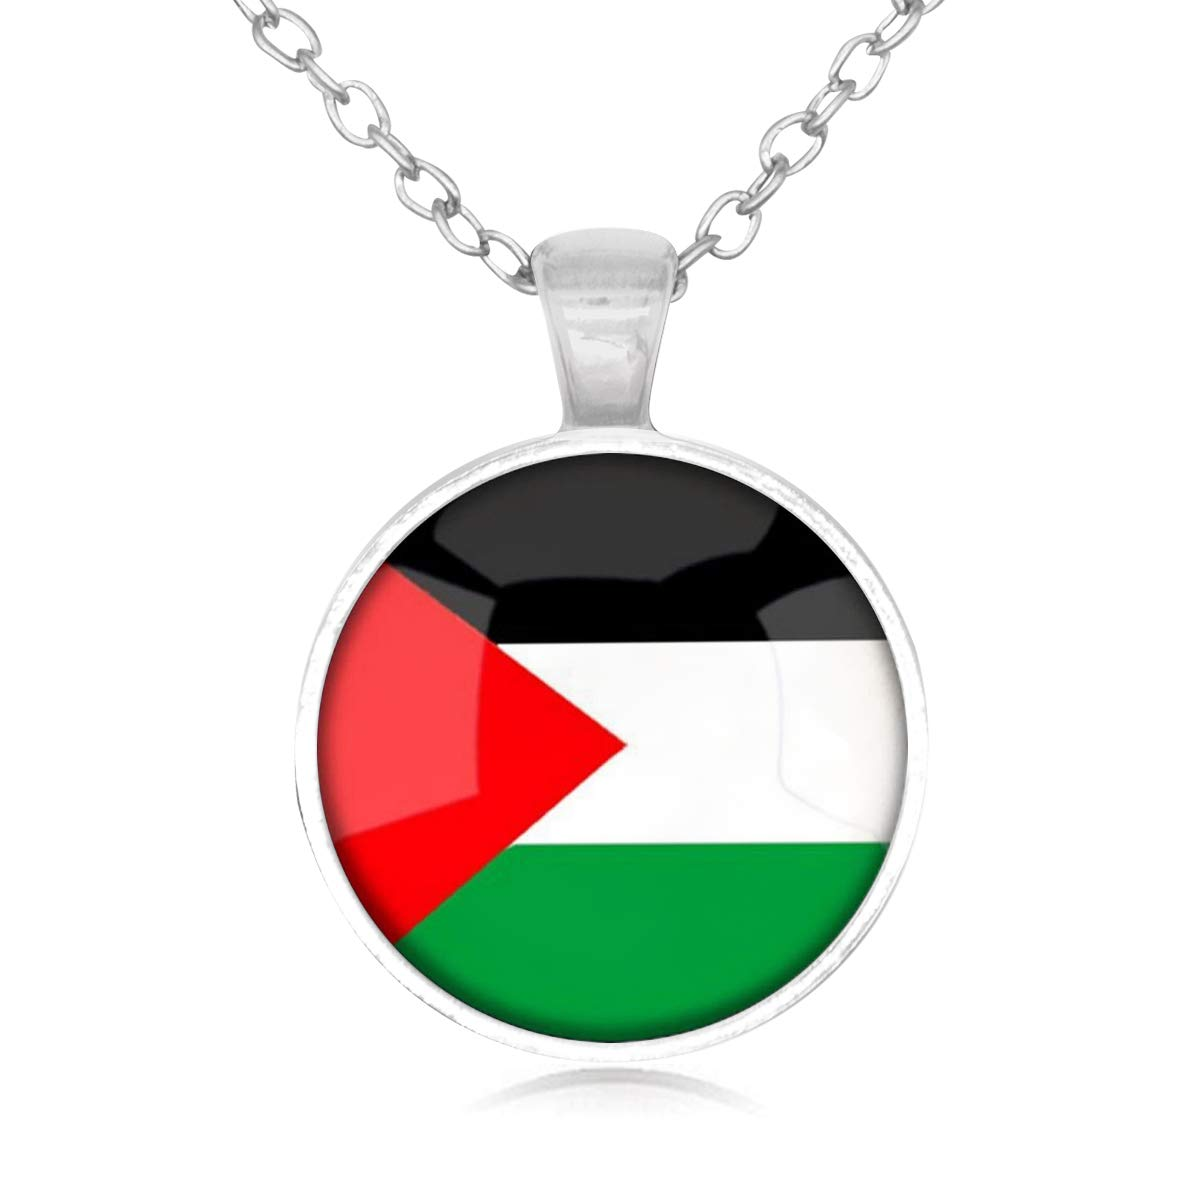 Family Decor The Hashemite Kingdom of Jordan National Flag Pendant Necklace Cabochon Glass Vintage Bronze Chain Necklace Jewelry Handmade